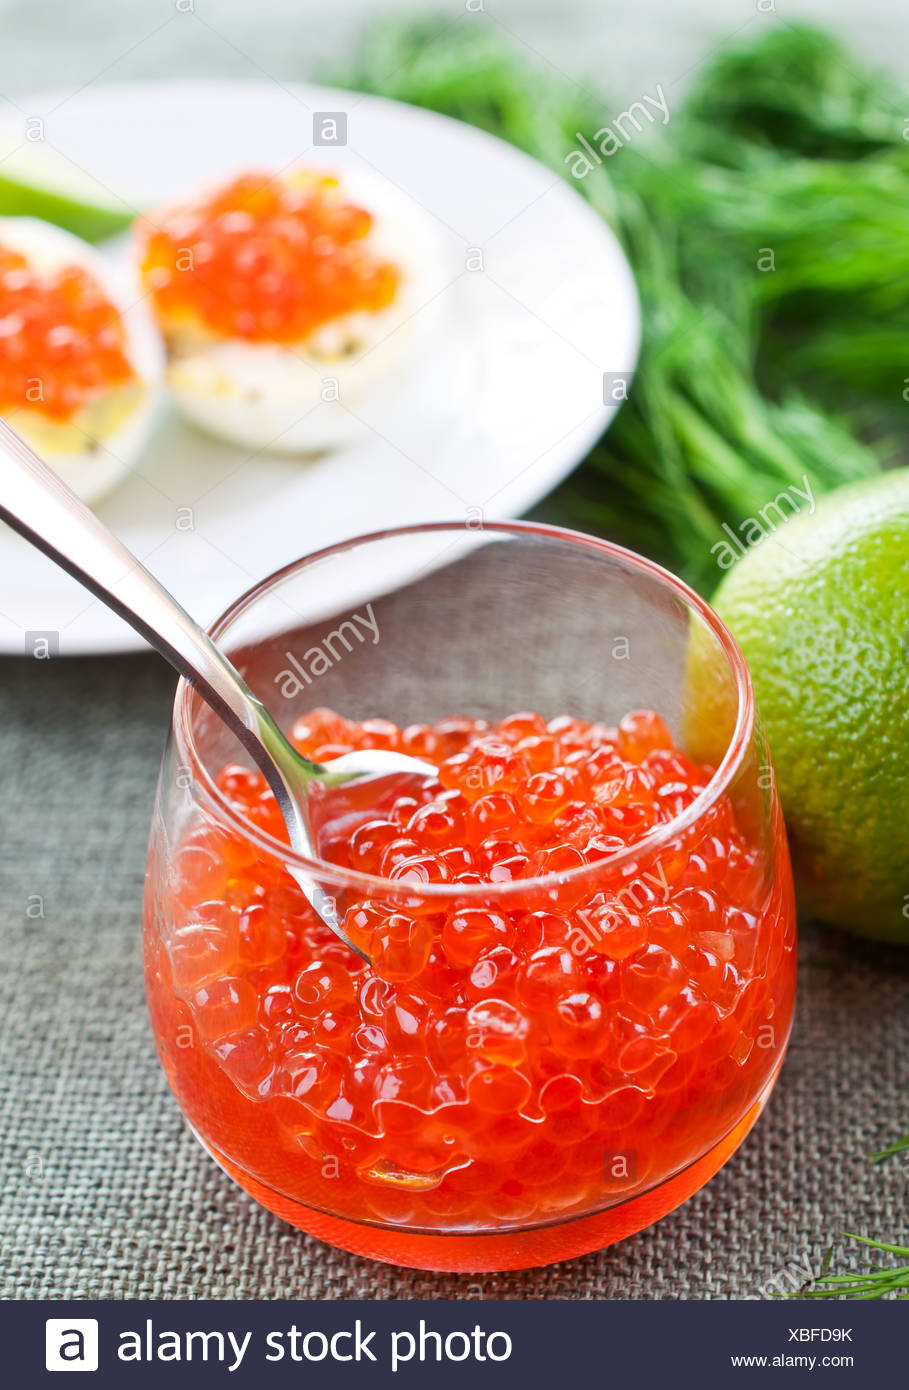 Salmon caviar in glasses on dill and lime background - Stock Image